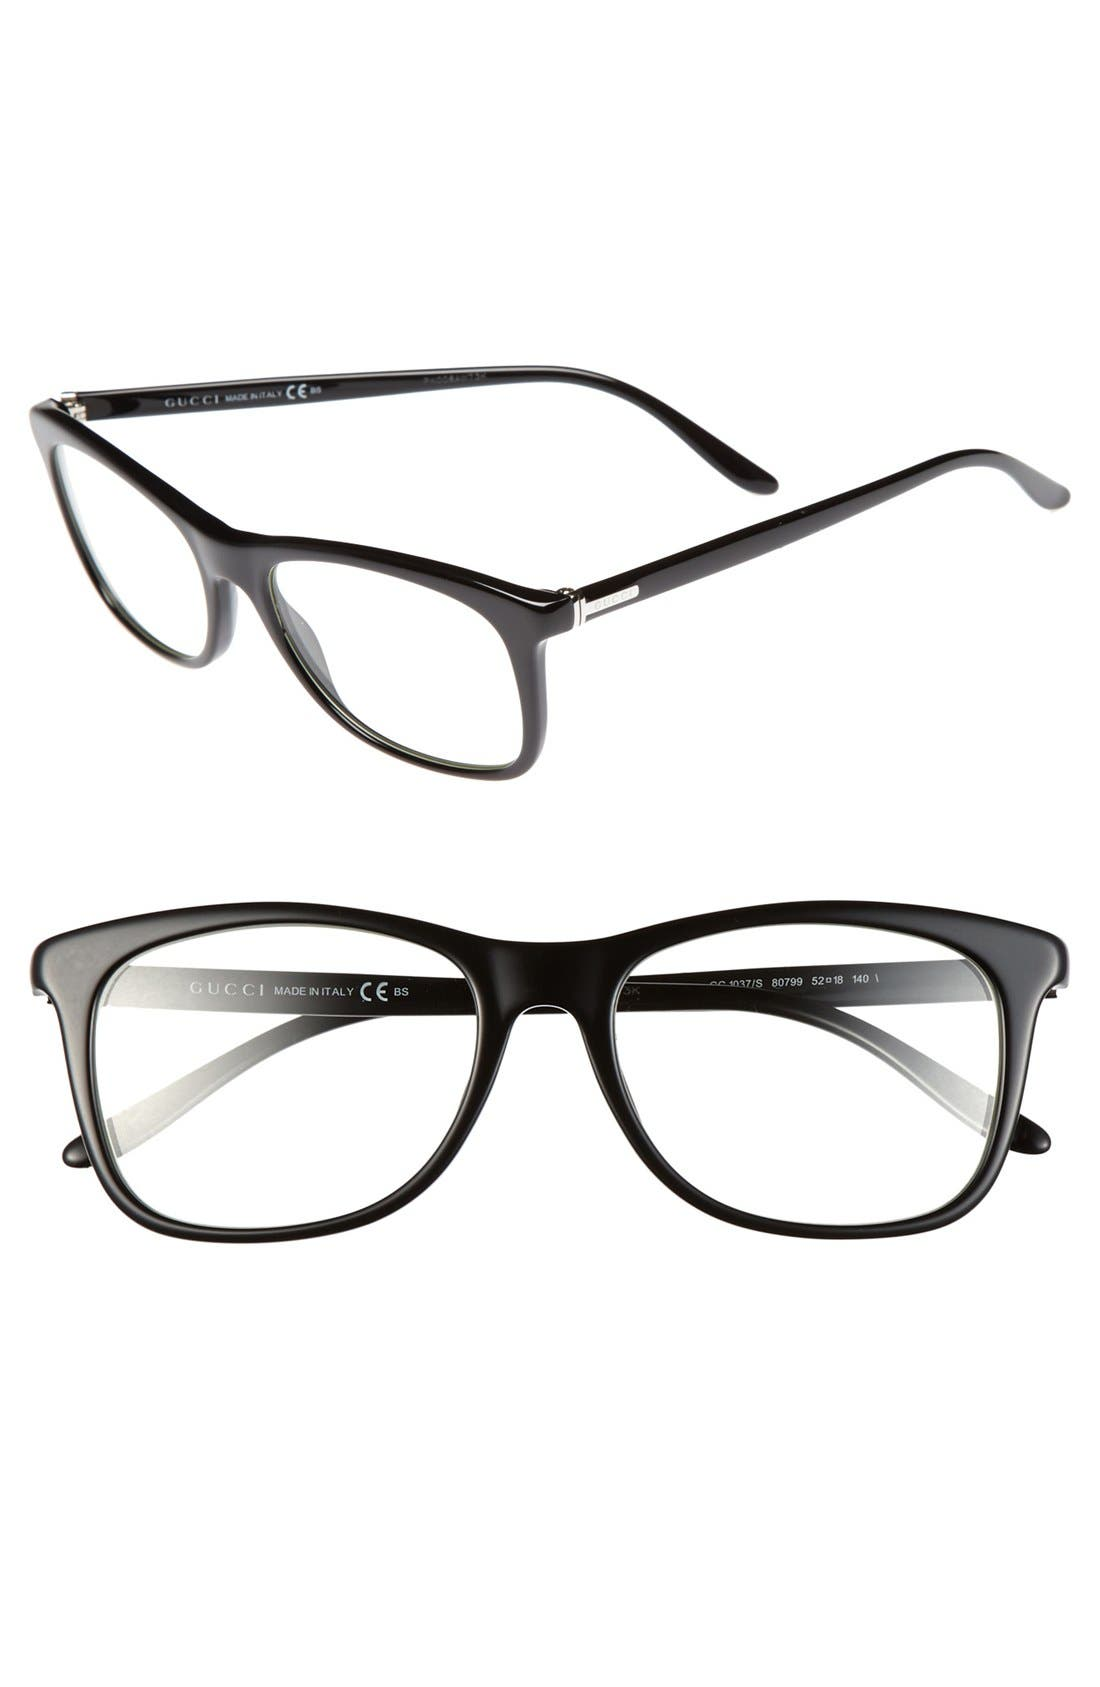 Alternate Image 1 Selected - Gucci 52mm Optical Glasses (Online Only)